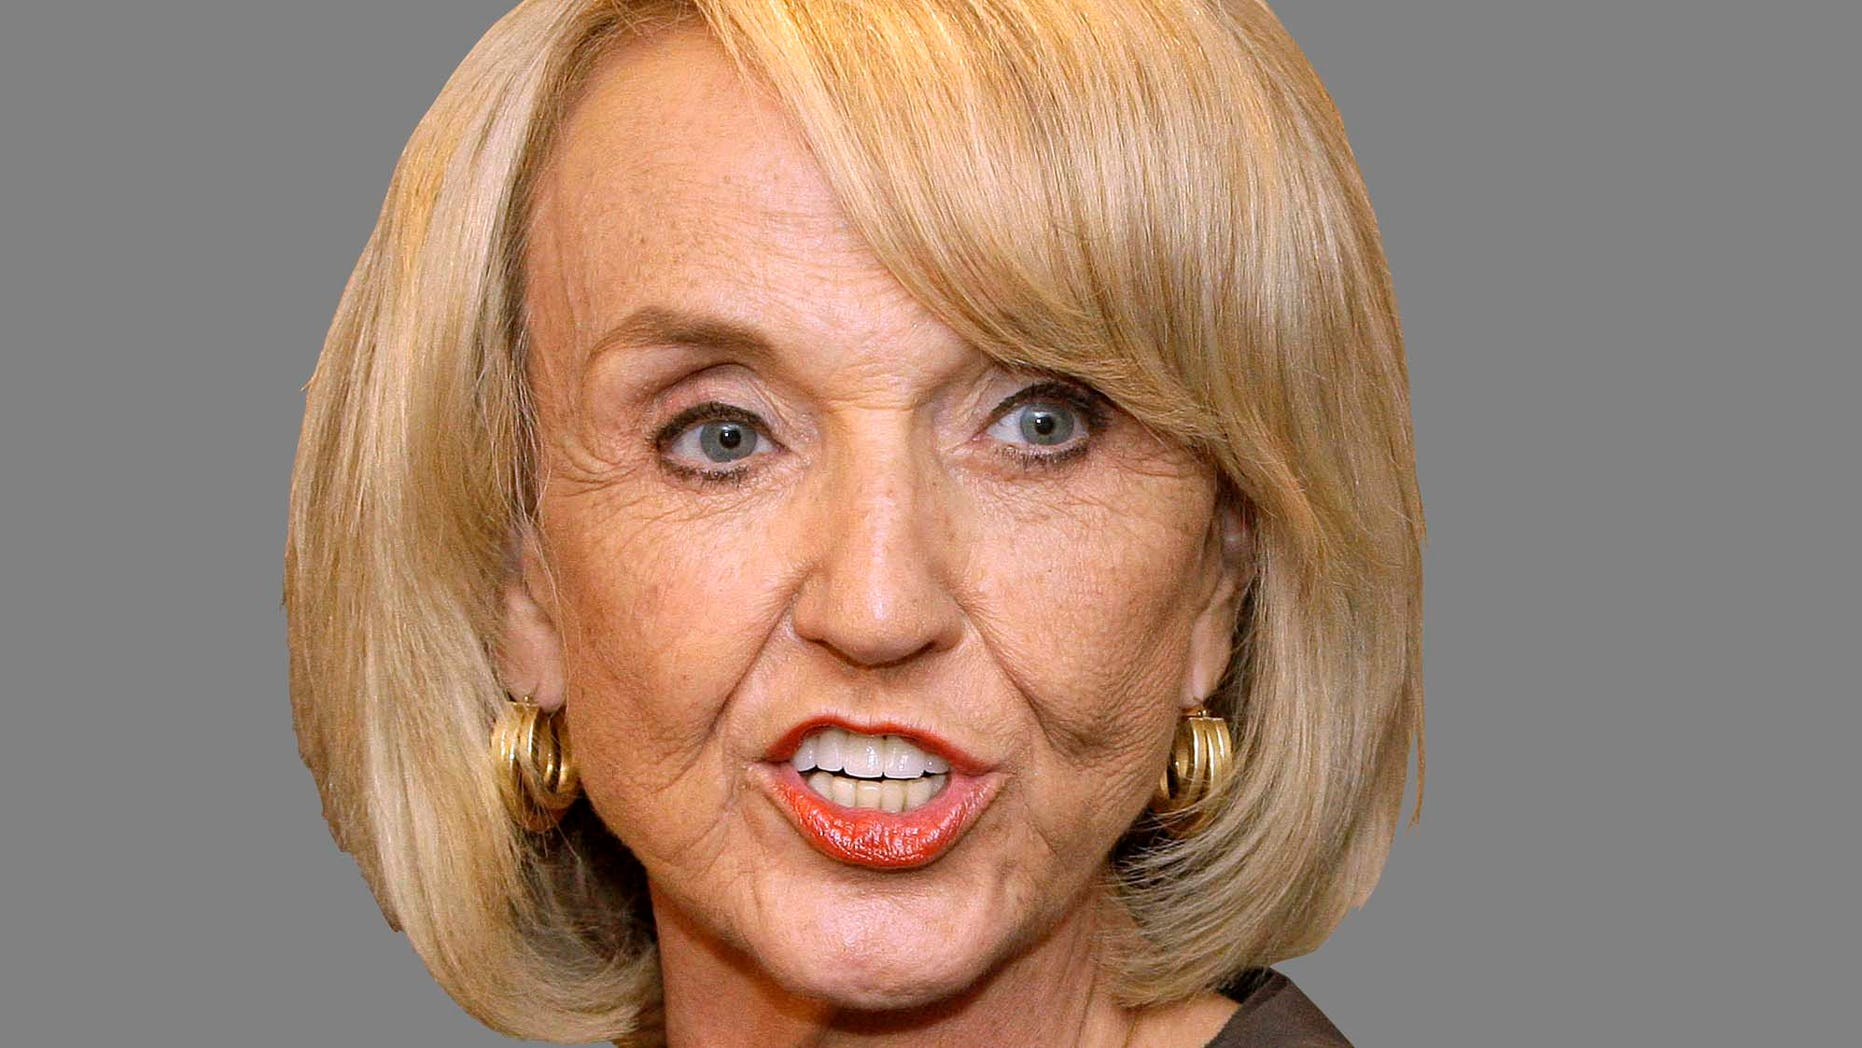 Arizona Gov. Jan Brewer, after meeting with Obama Administration officials regarding the border, immigration, and National Guard troop deployment, talks about the meeting at the capitol Monday, June 28, 2010, in Phoenix. The officials told the governor that 524 of the 1,200 National Guard troops headed to the U.S. Mexican border will be deployed in the state. (AP Photo/Ross D. Franklin)